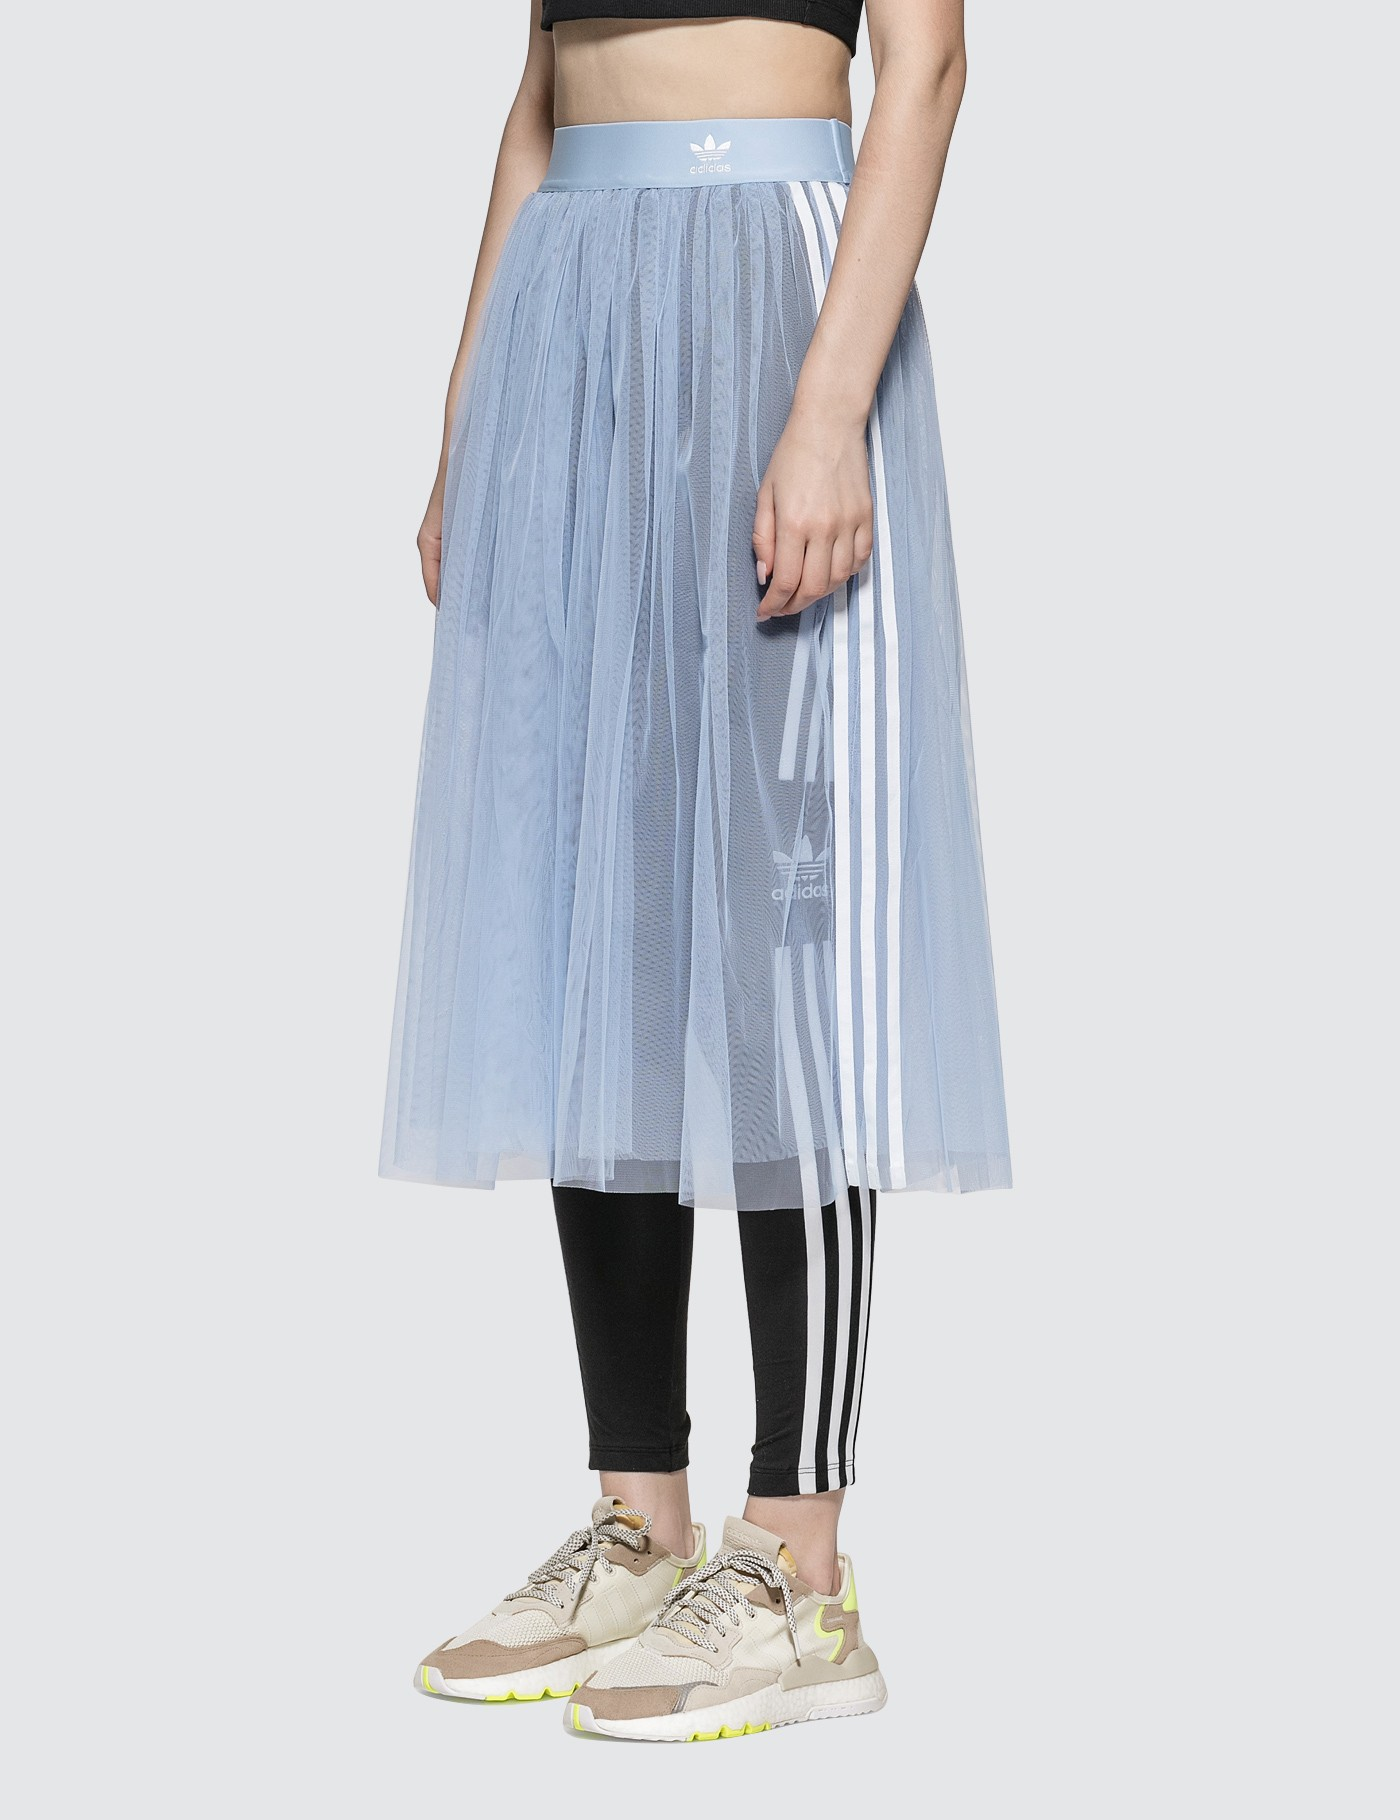 Adidas Originals Skirt Tulle